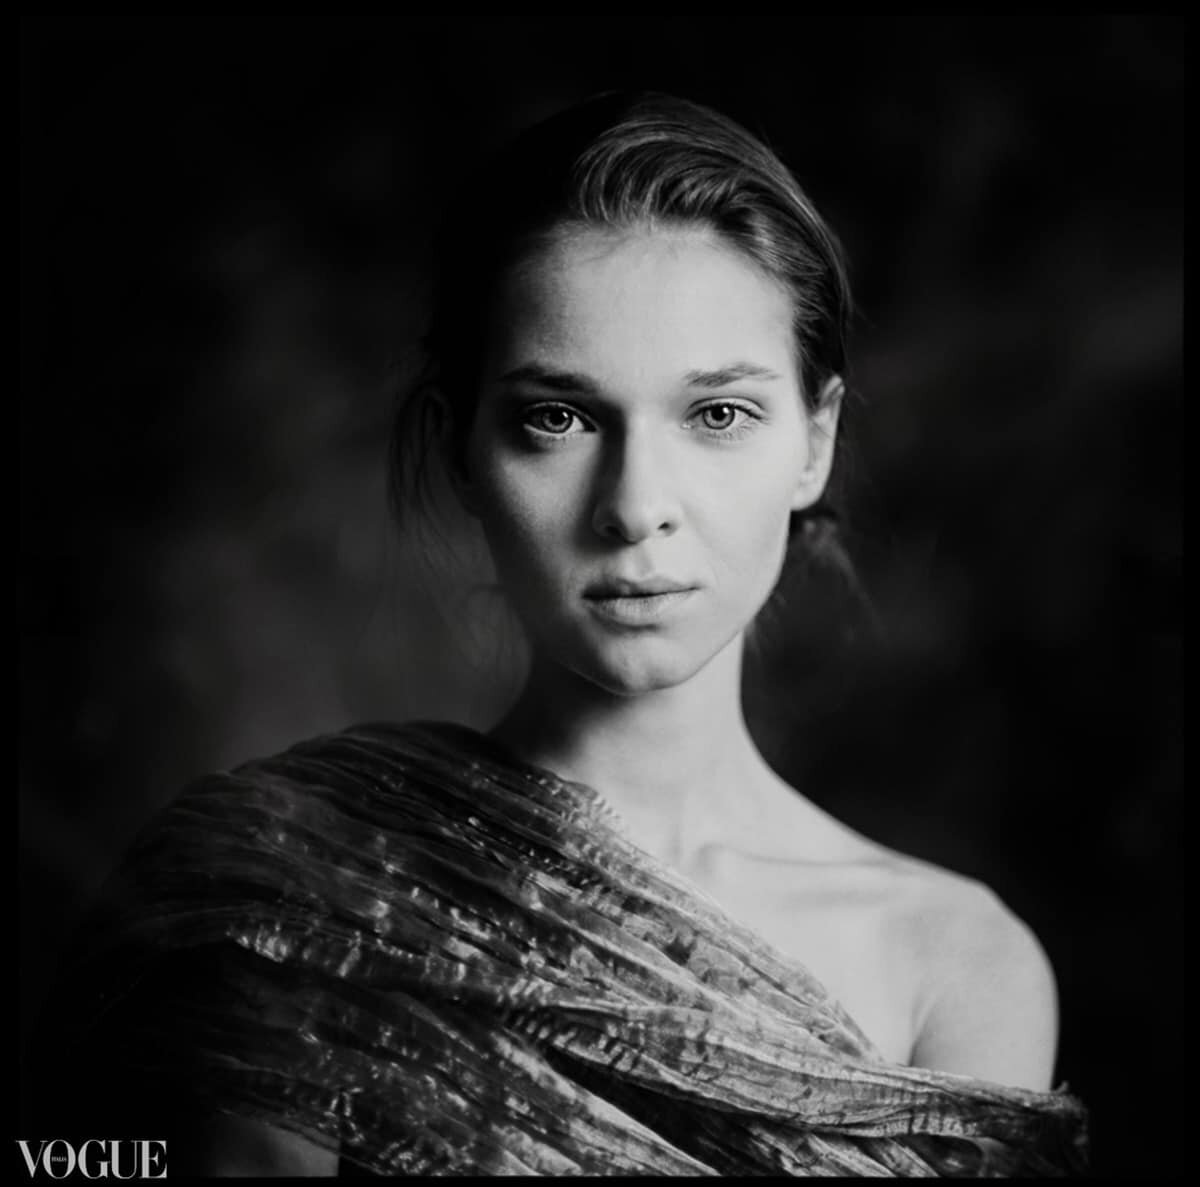 vogue-portrait-photographer-boston-photo-16